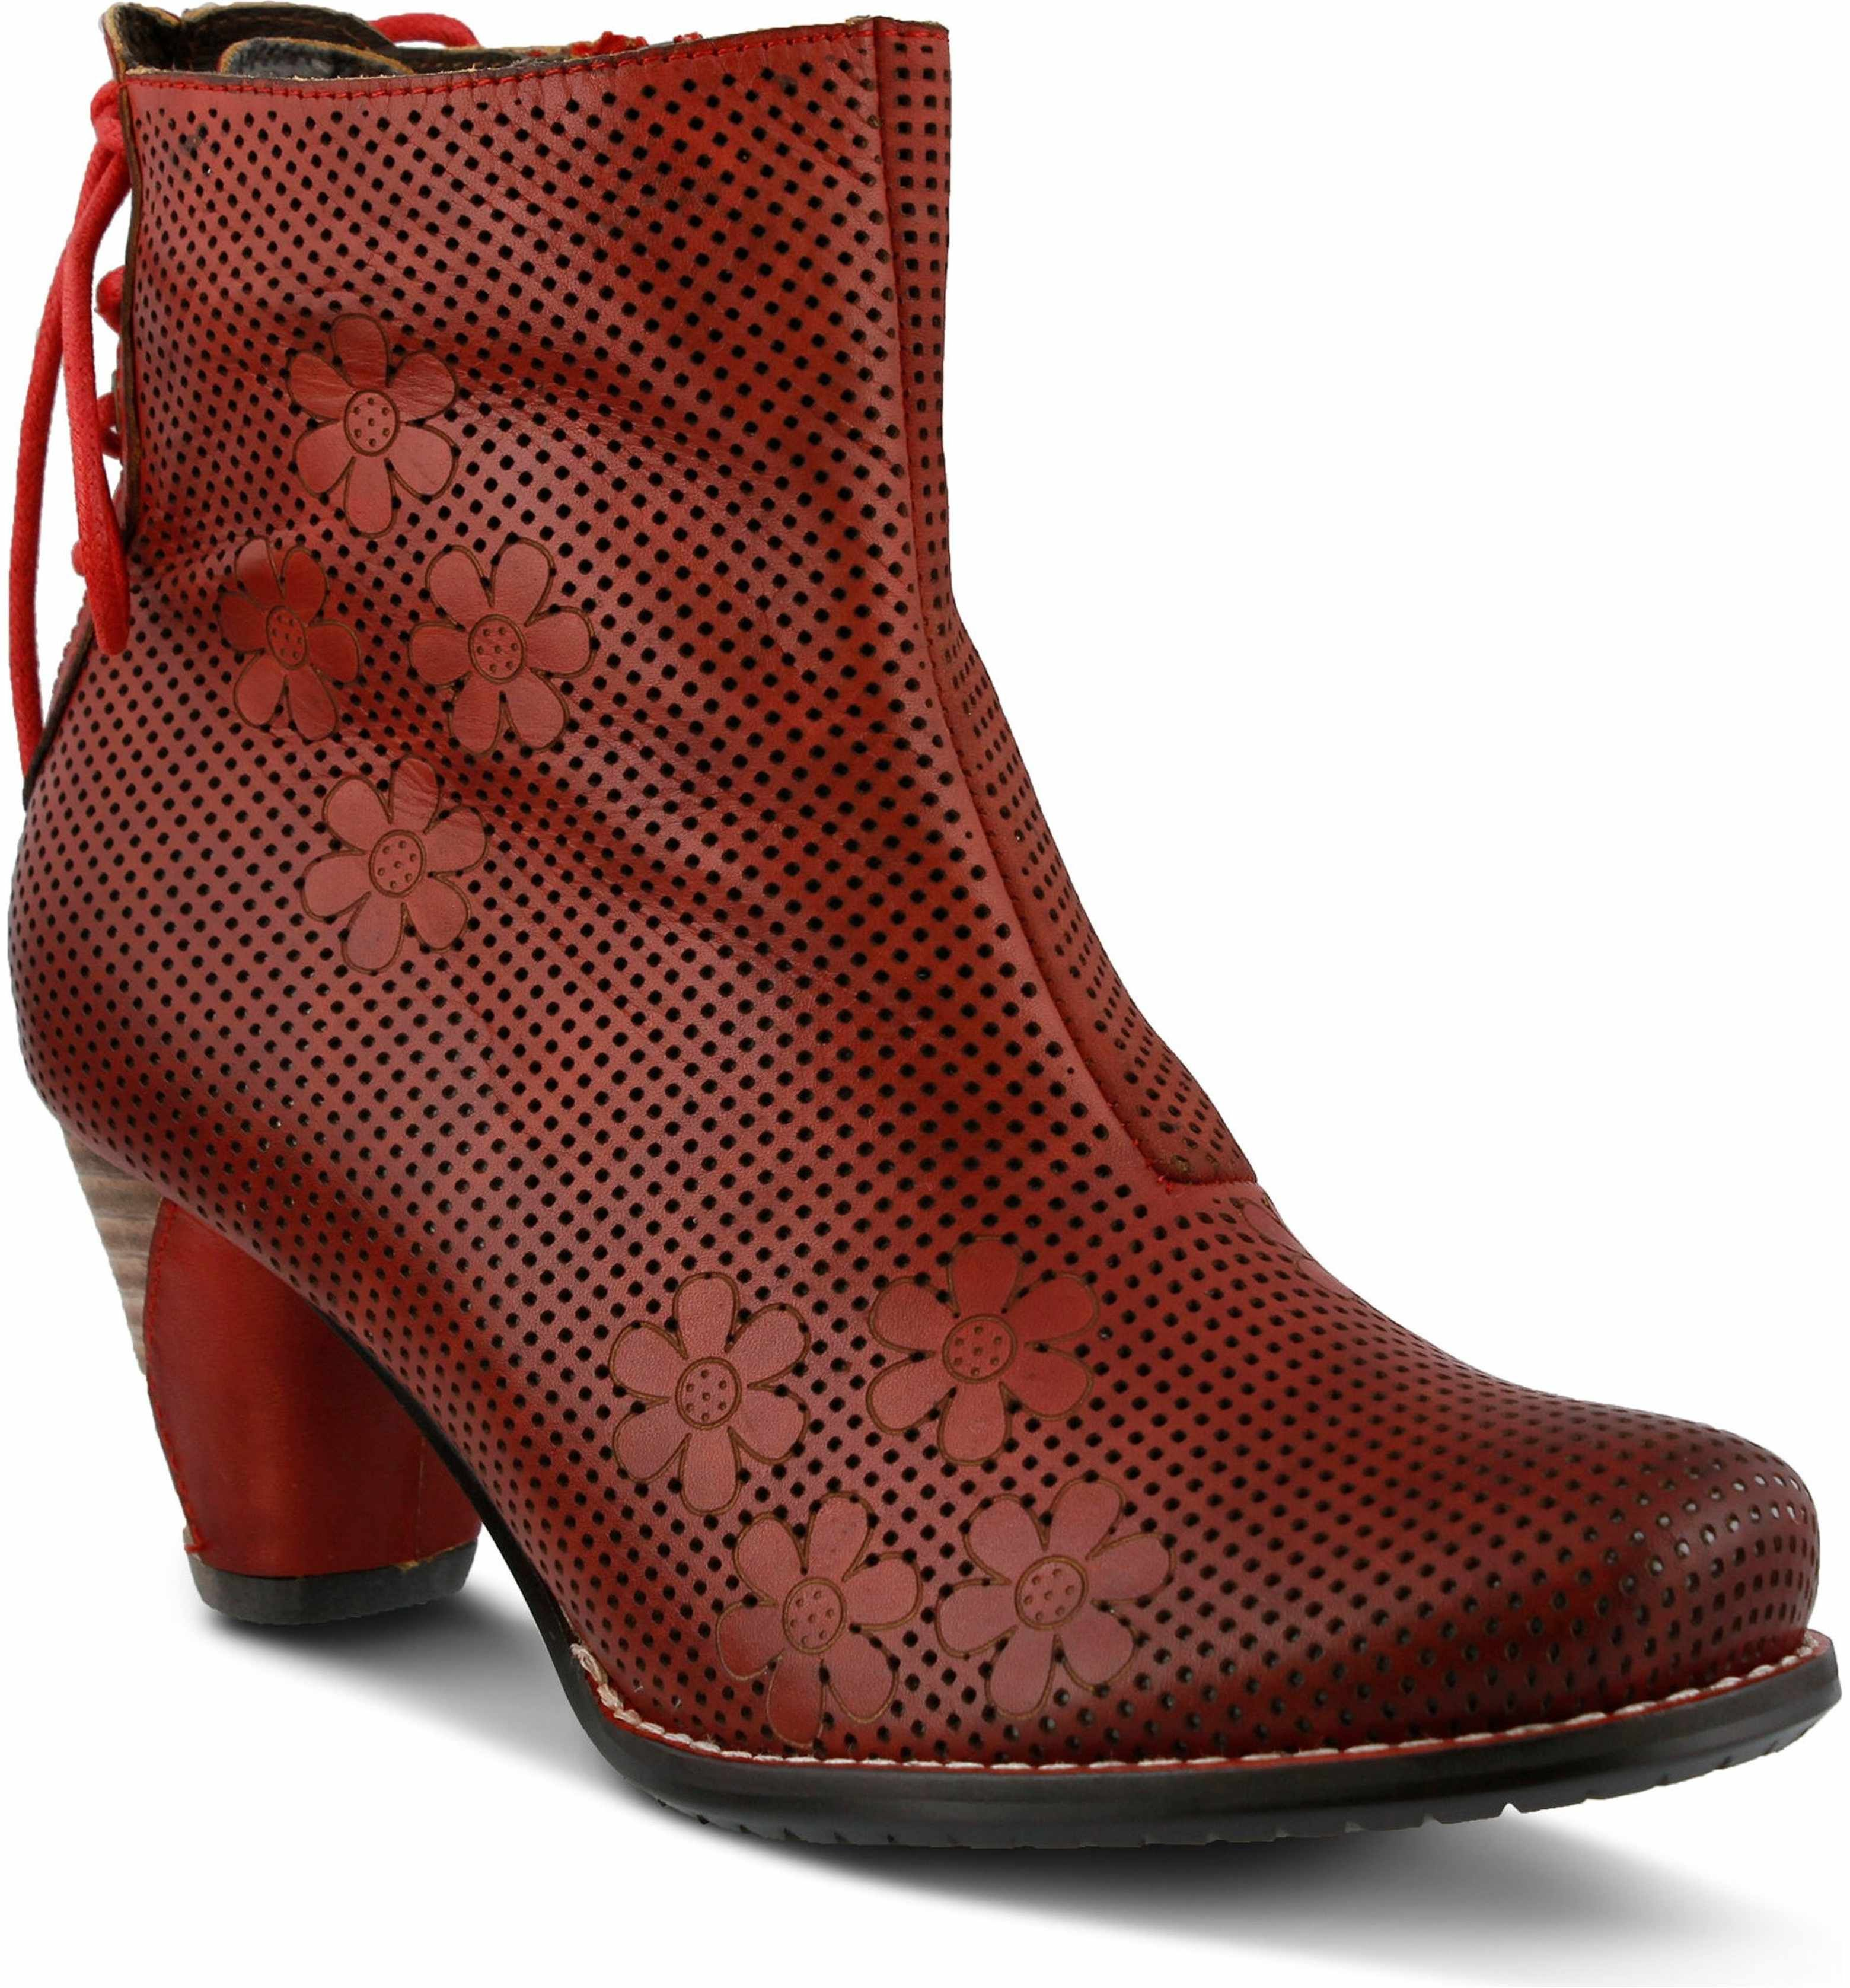 Lartiste teca bootie women lace up ankle boots